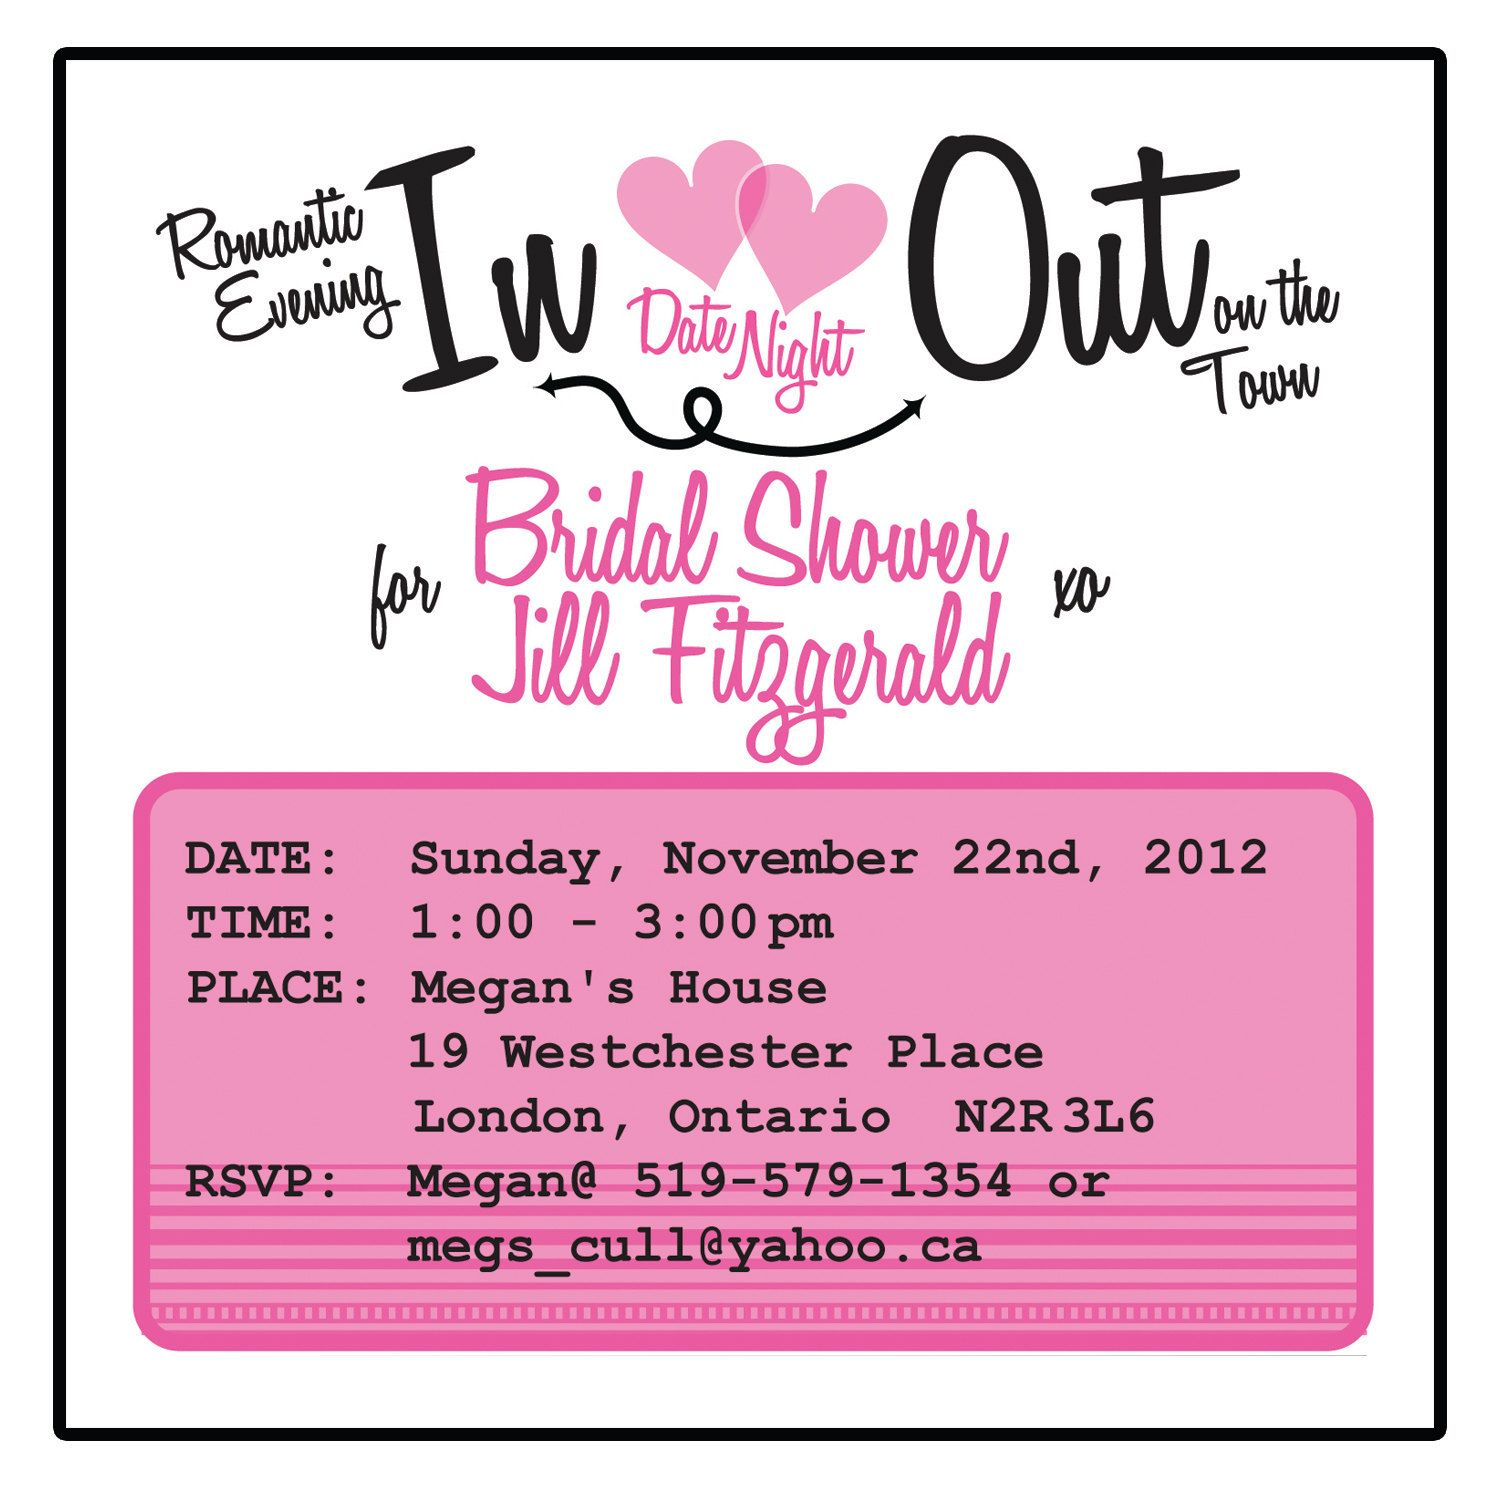 bridal shower invitations with a date night theme shower pink and black alternative bridal shower gift card shower invitations